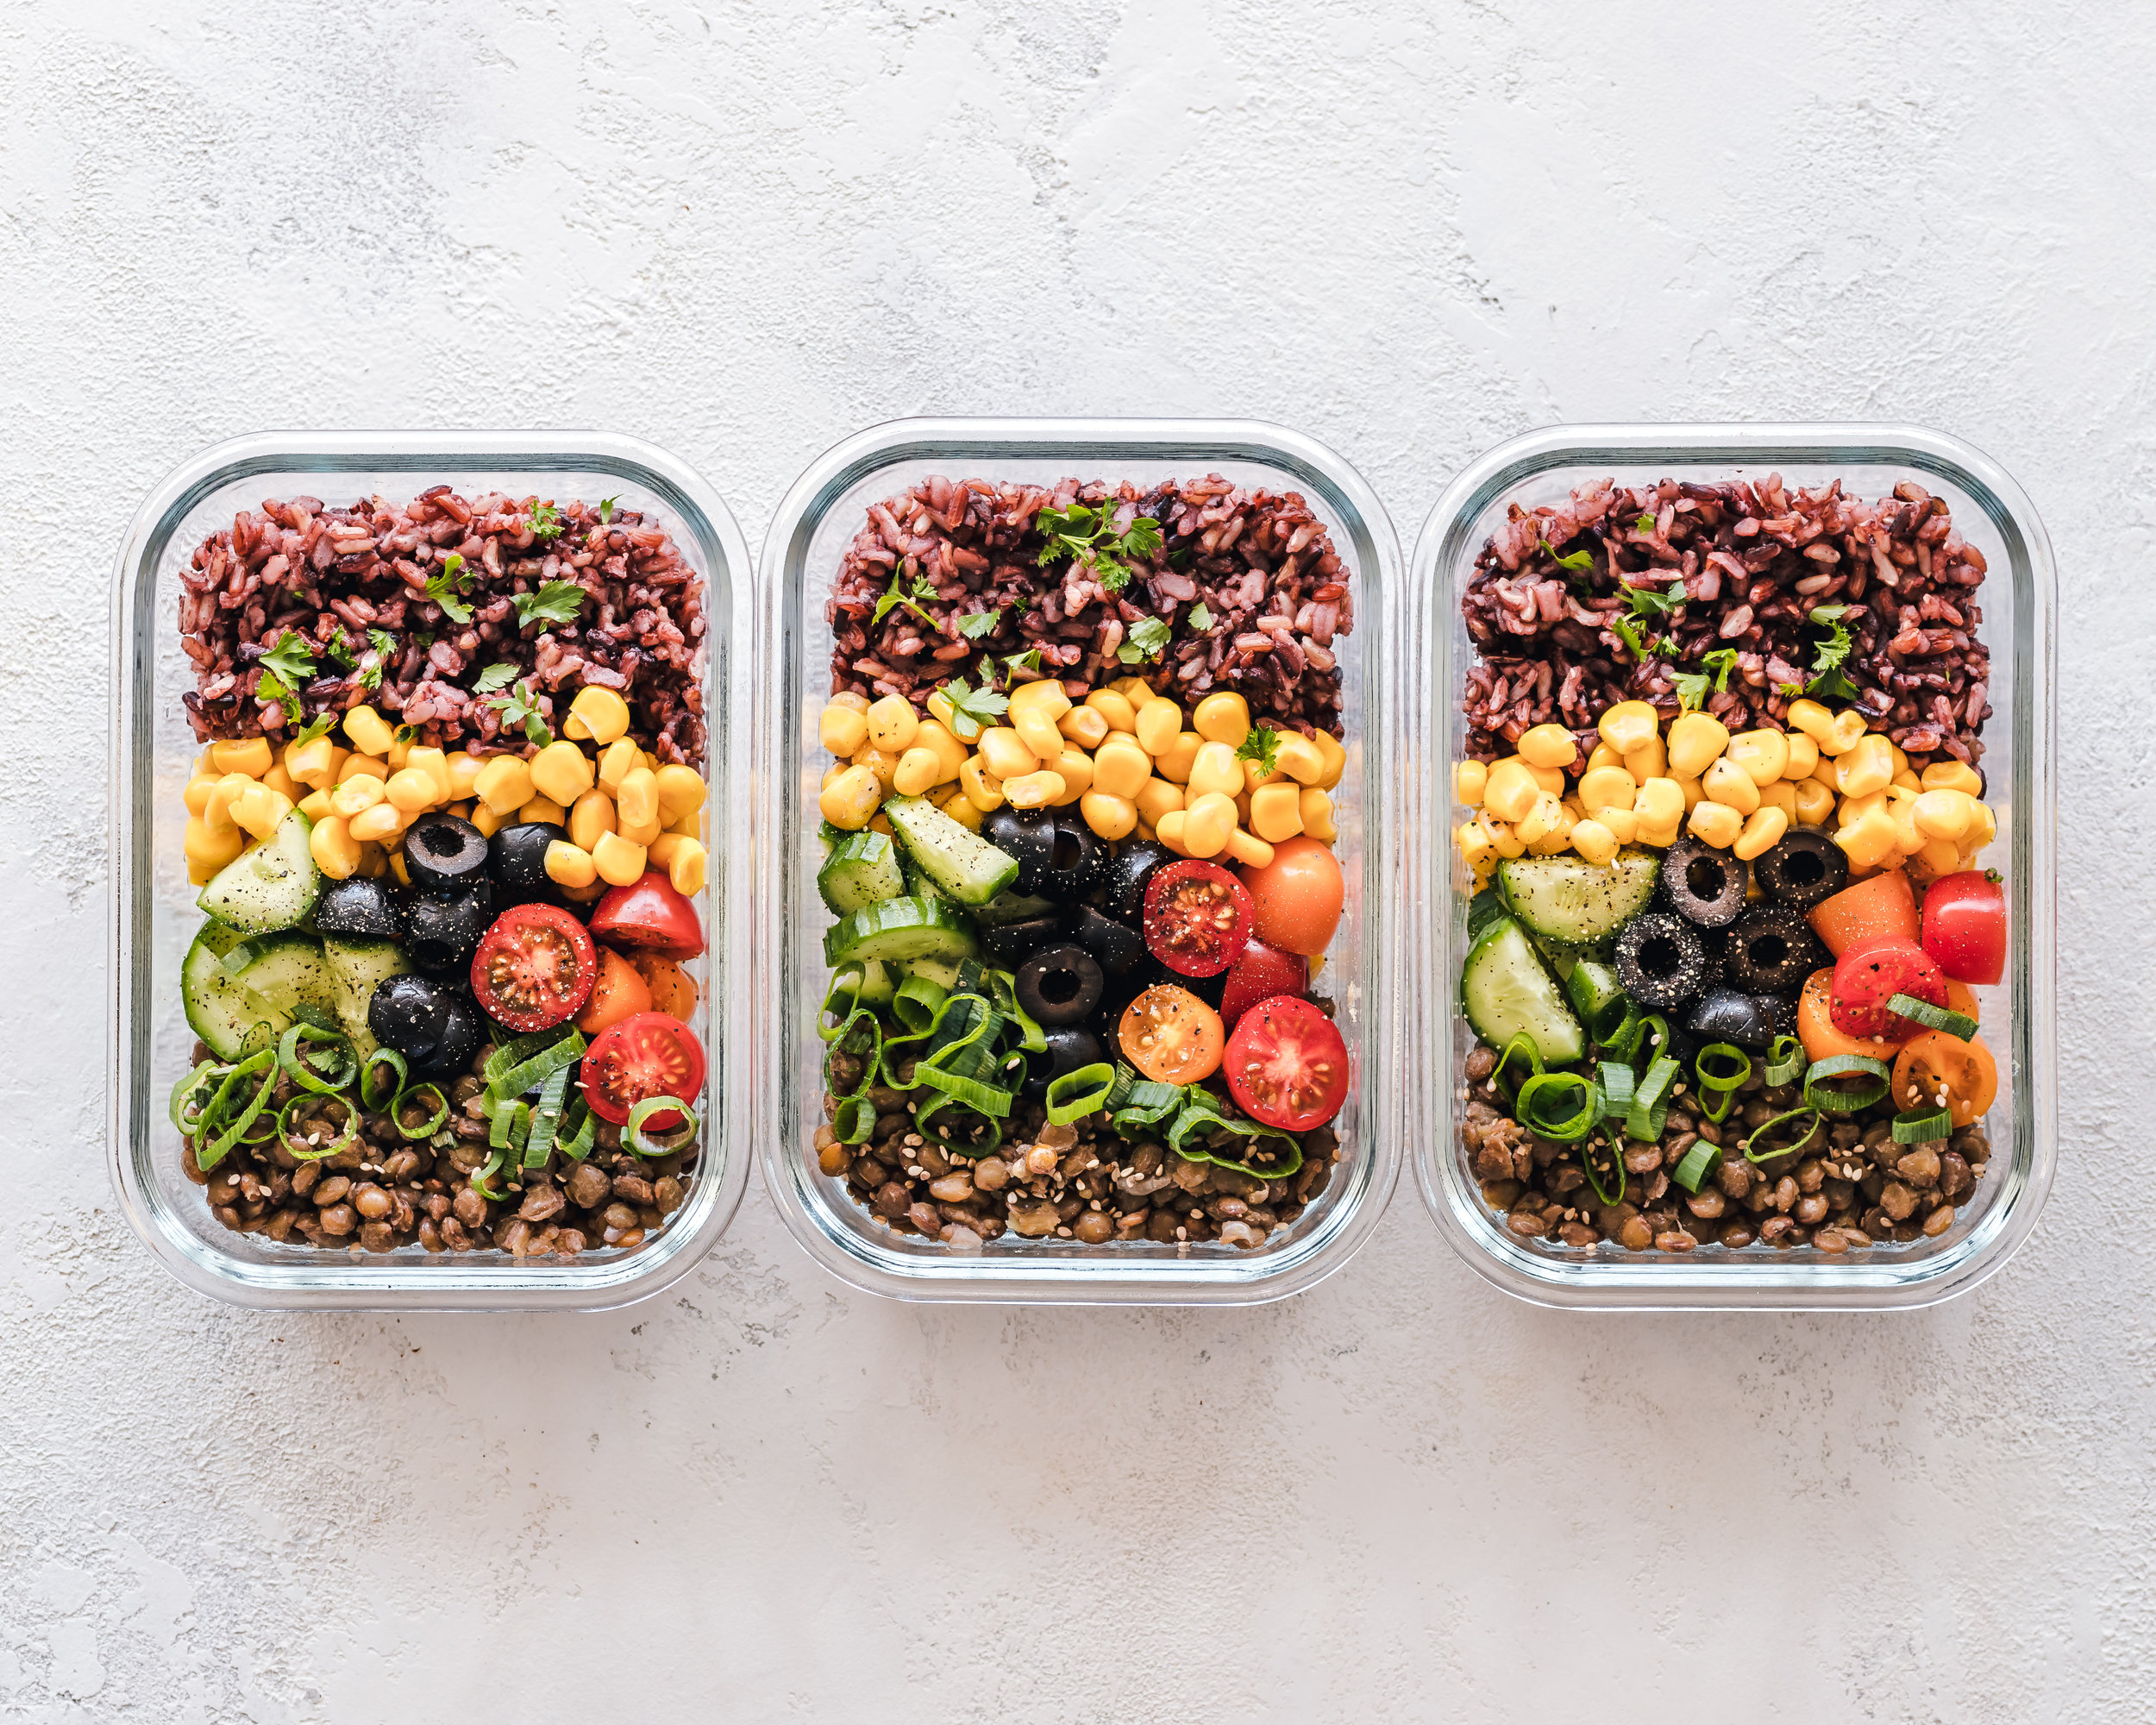 No time to cook? No problem! - Meal Prep is where it's at!